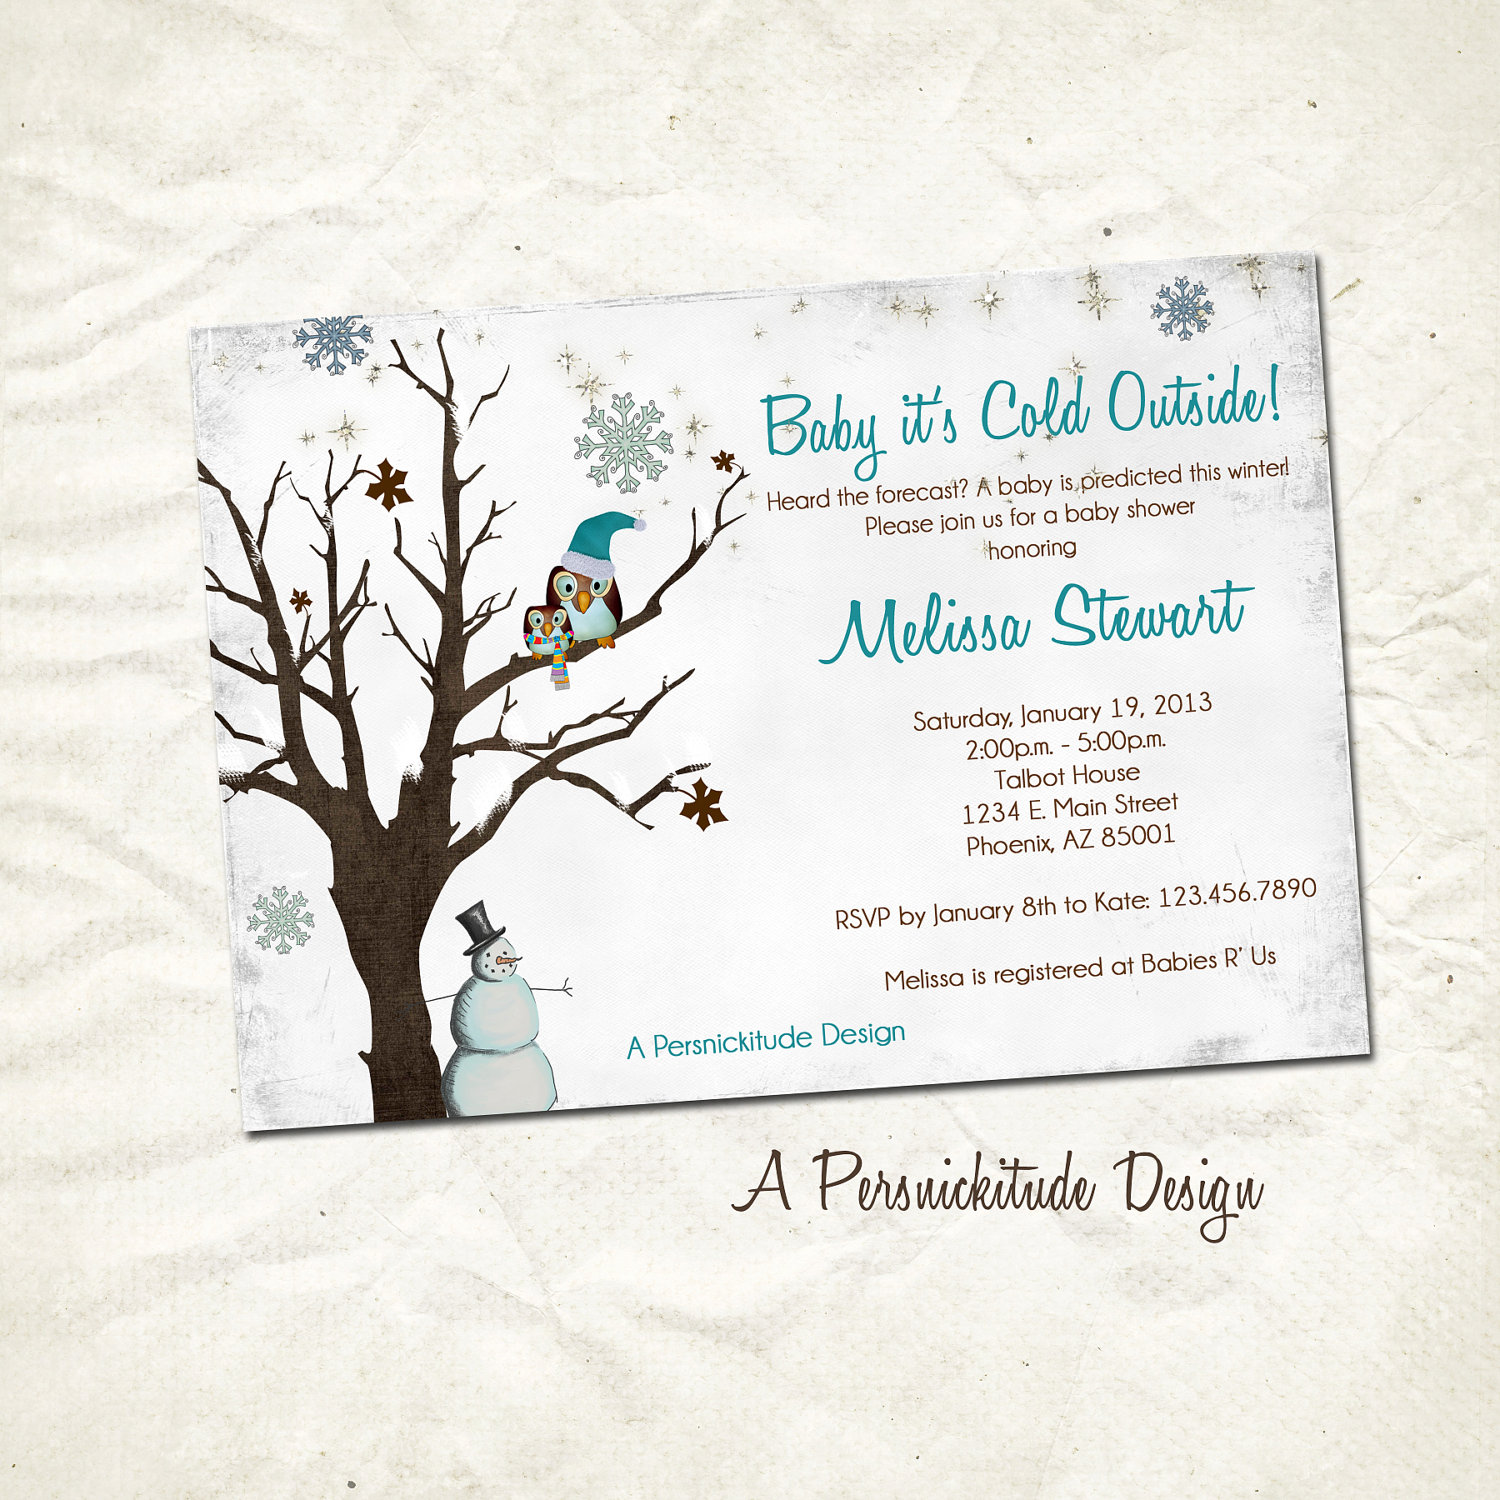 winter snowflake baby shower invitation print by persnickitude